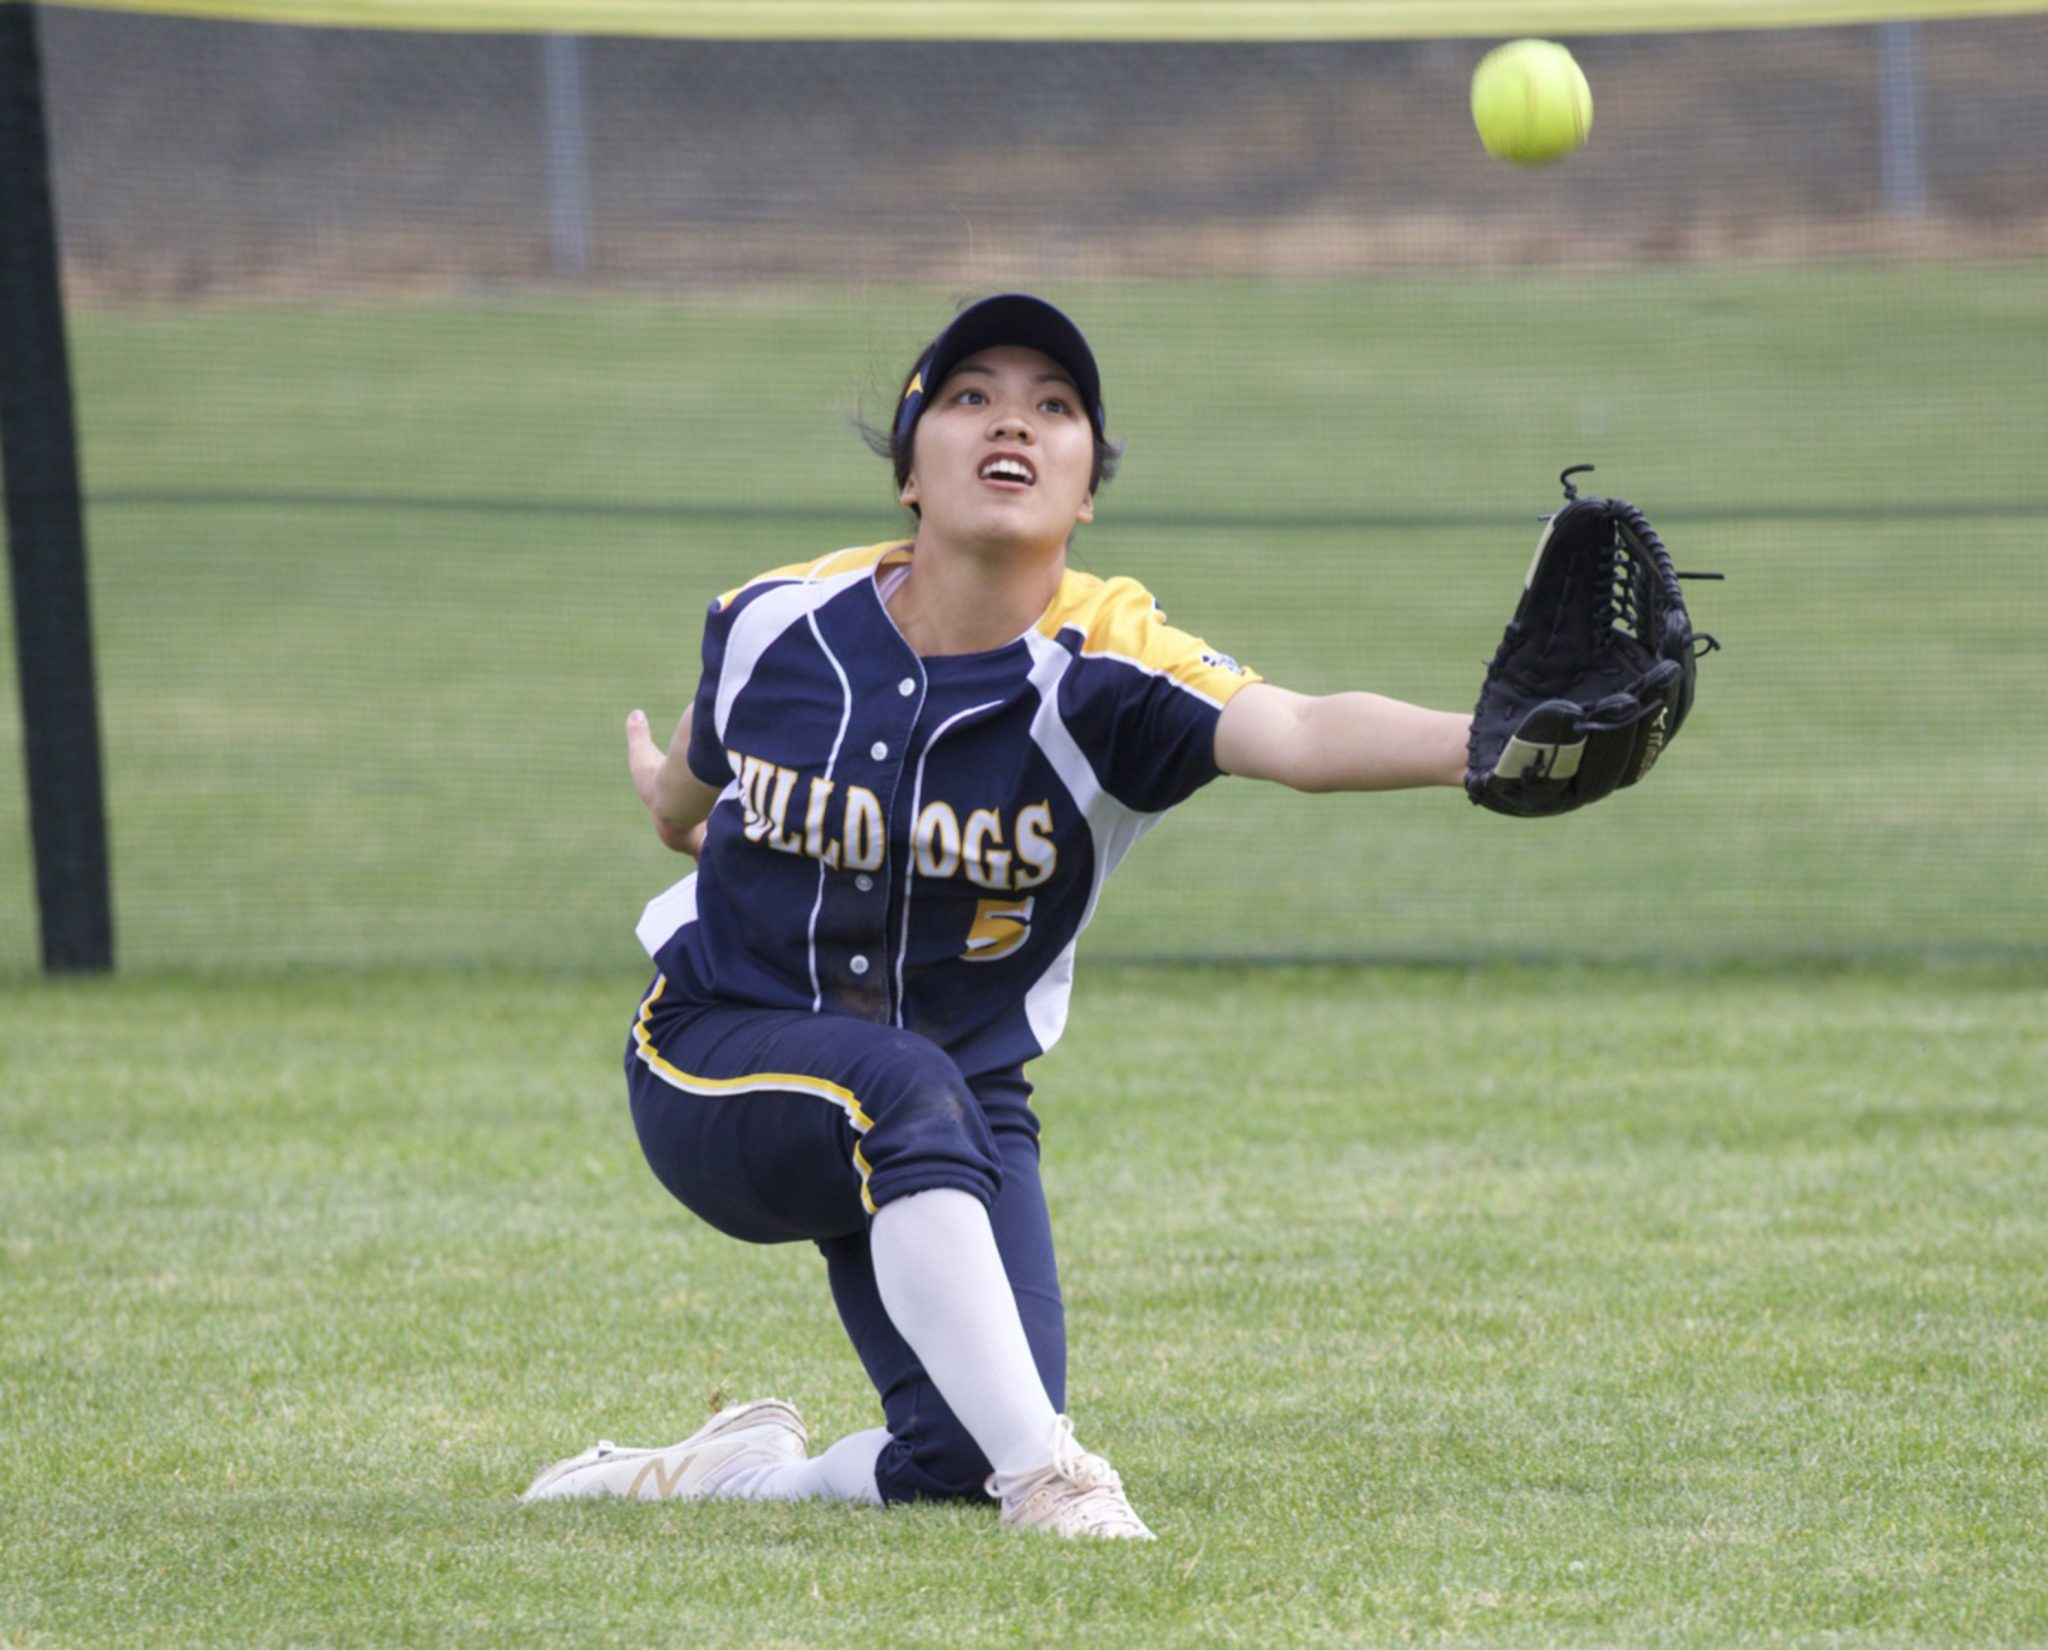 Senior Kimiko Zapanta had two hits in the Bulldogs 9-1 loss to Foothill-Pleasanton in the opening game of the Livermore Stampede Tournament on April 6, 2017. (MARK FIERNER / Martinez Tribune)